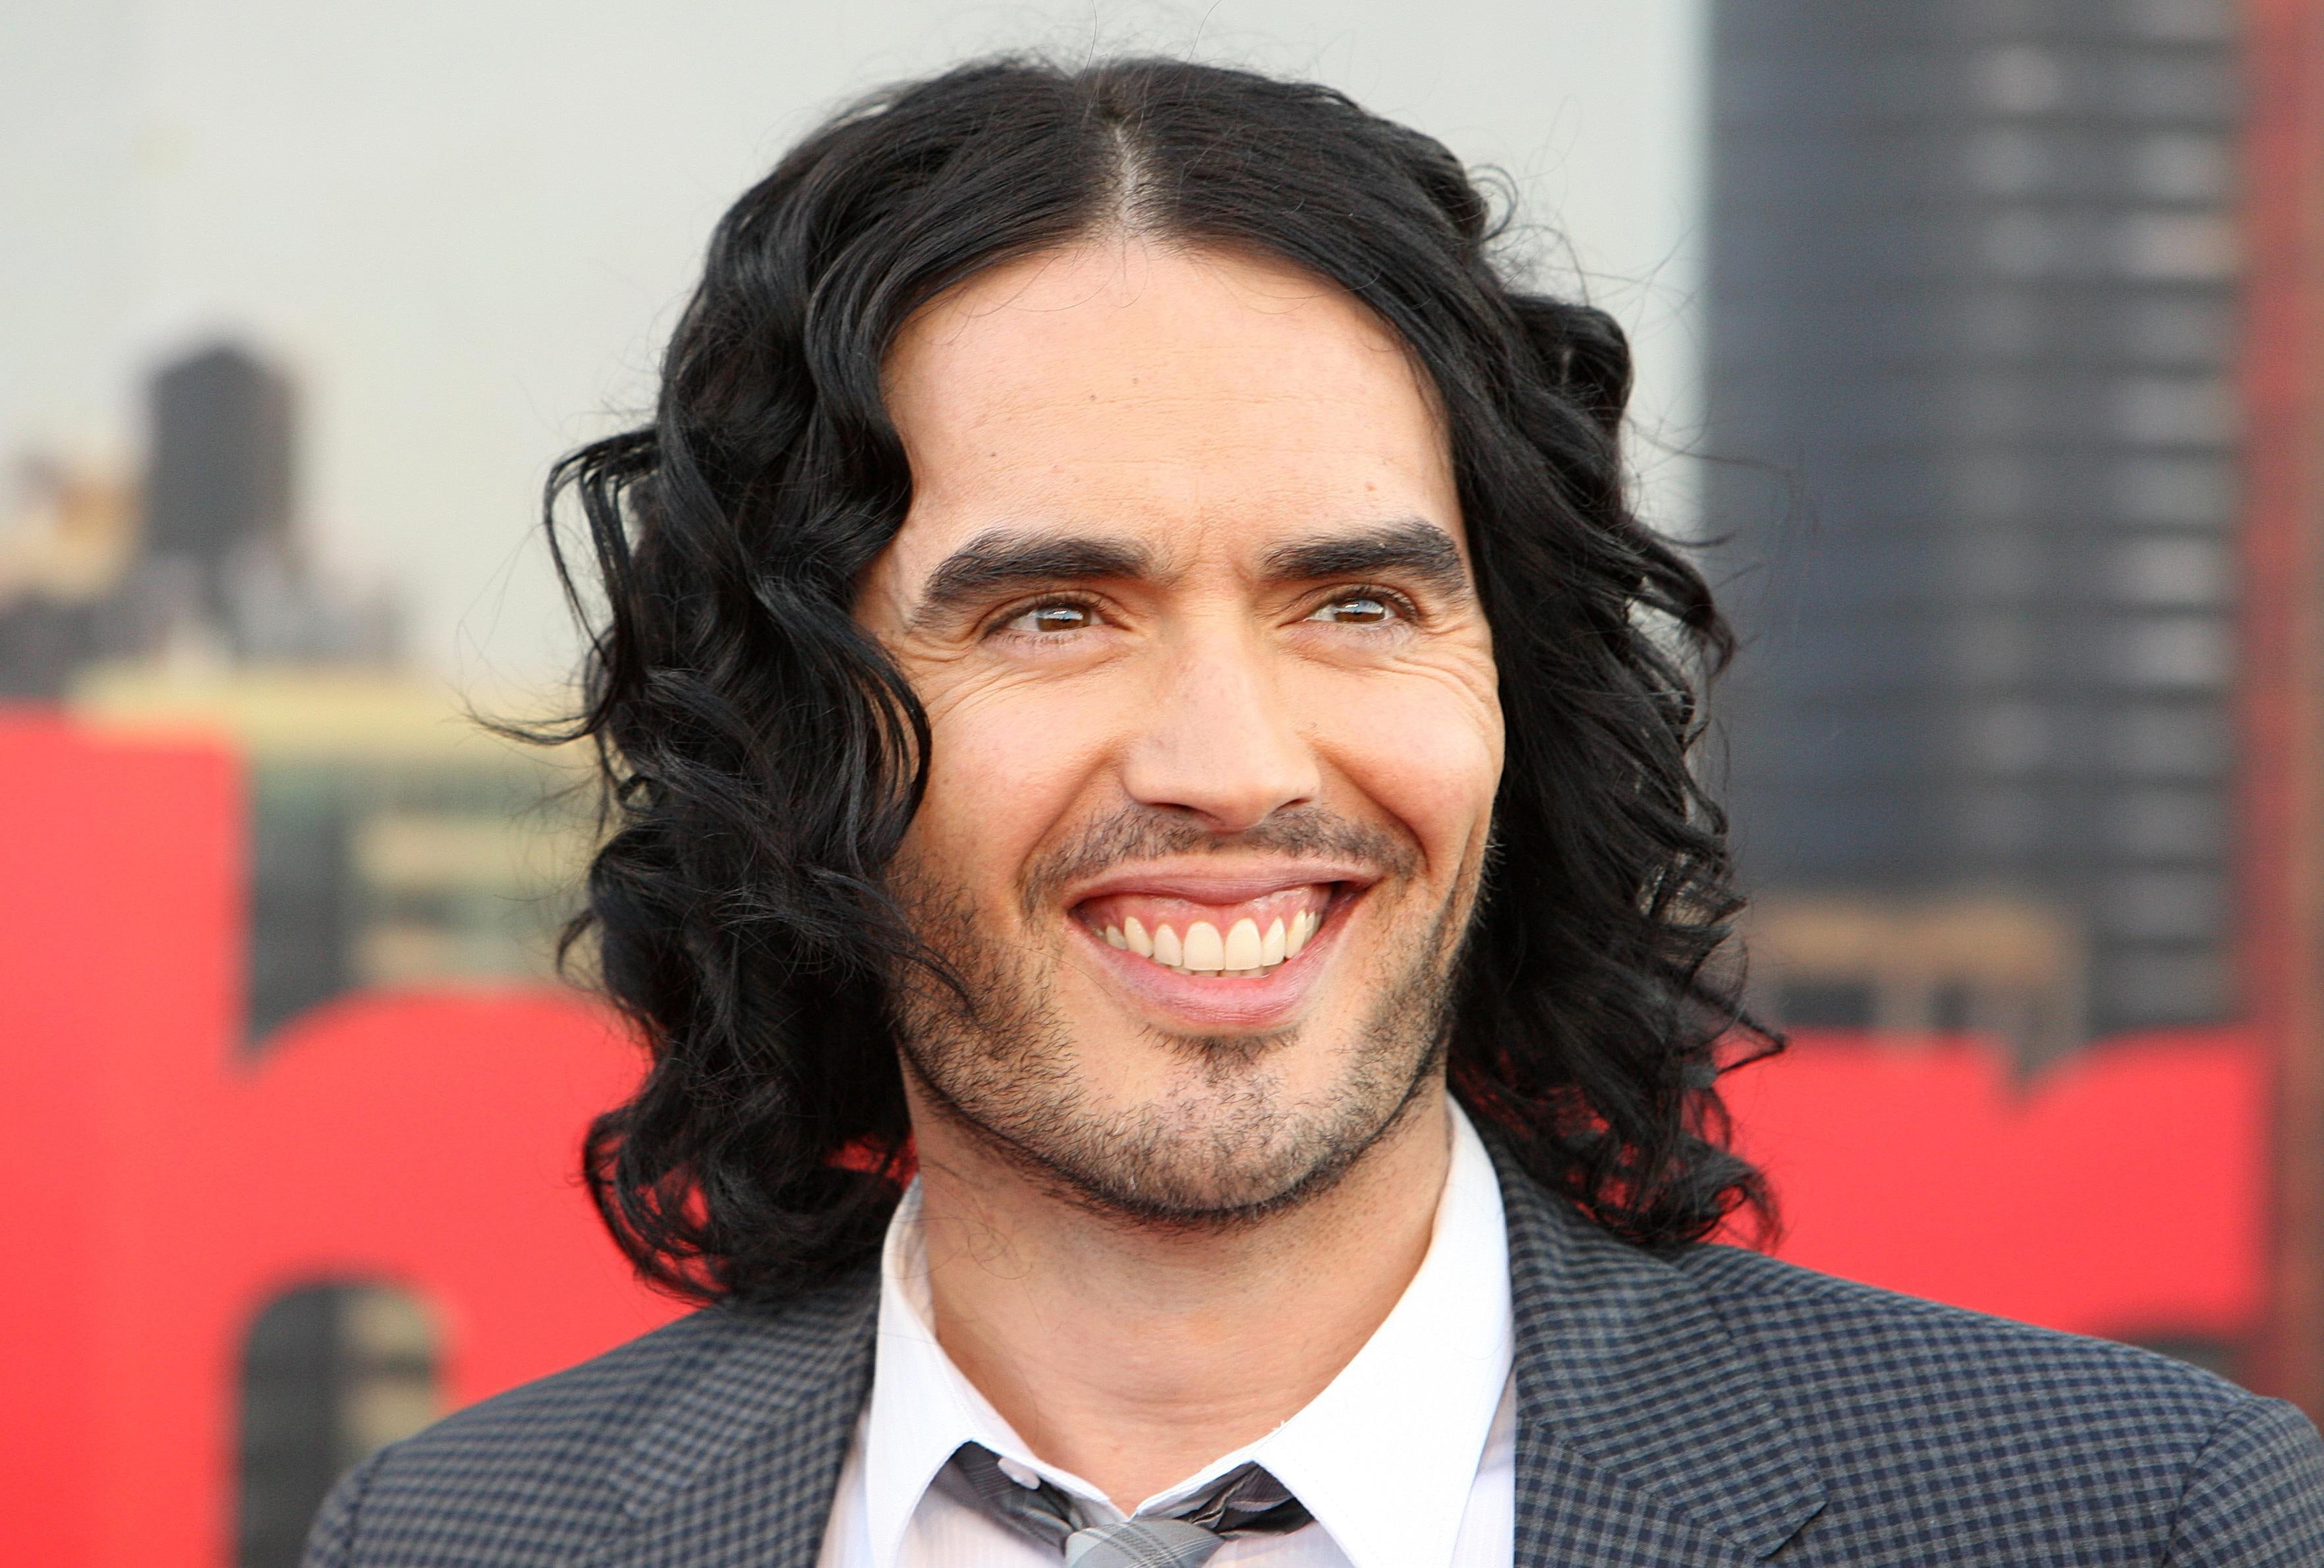 Russell Brand Background